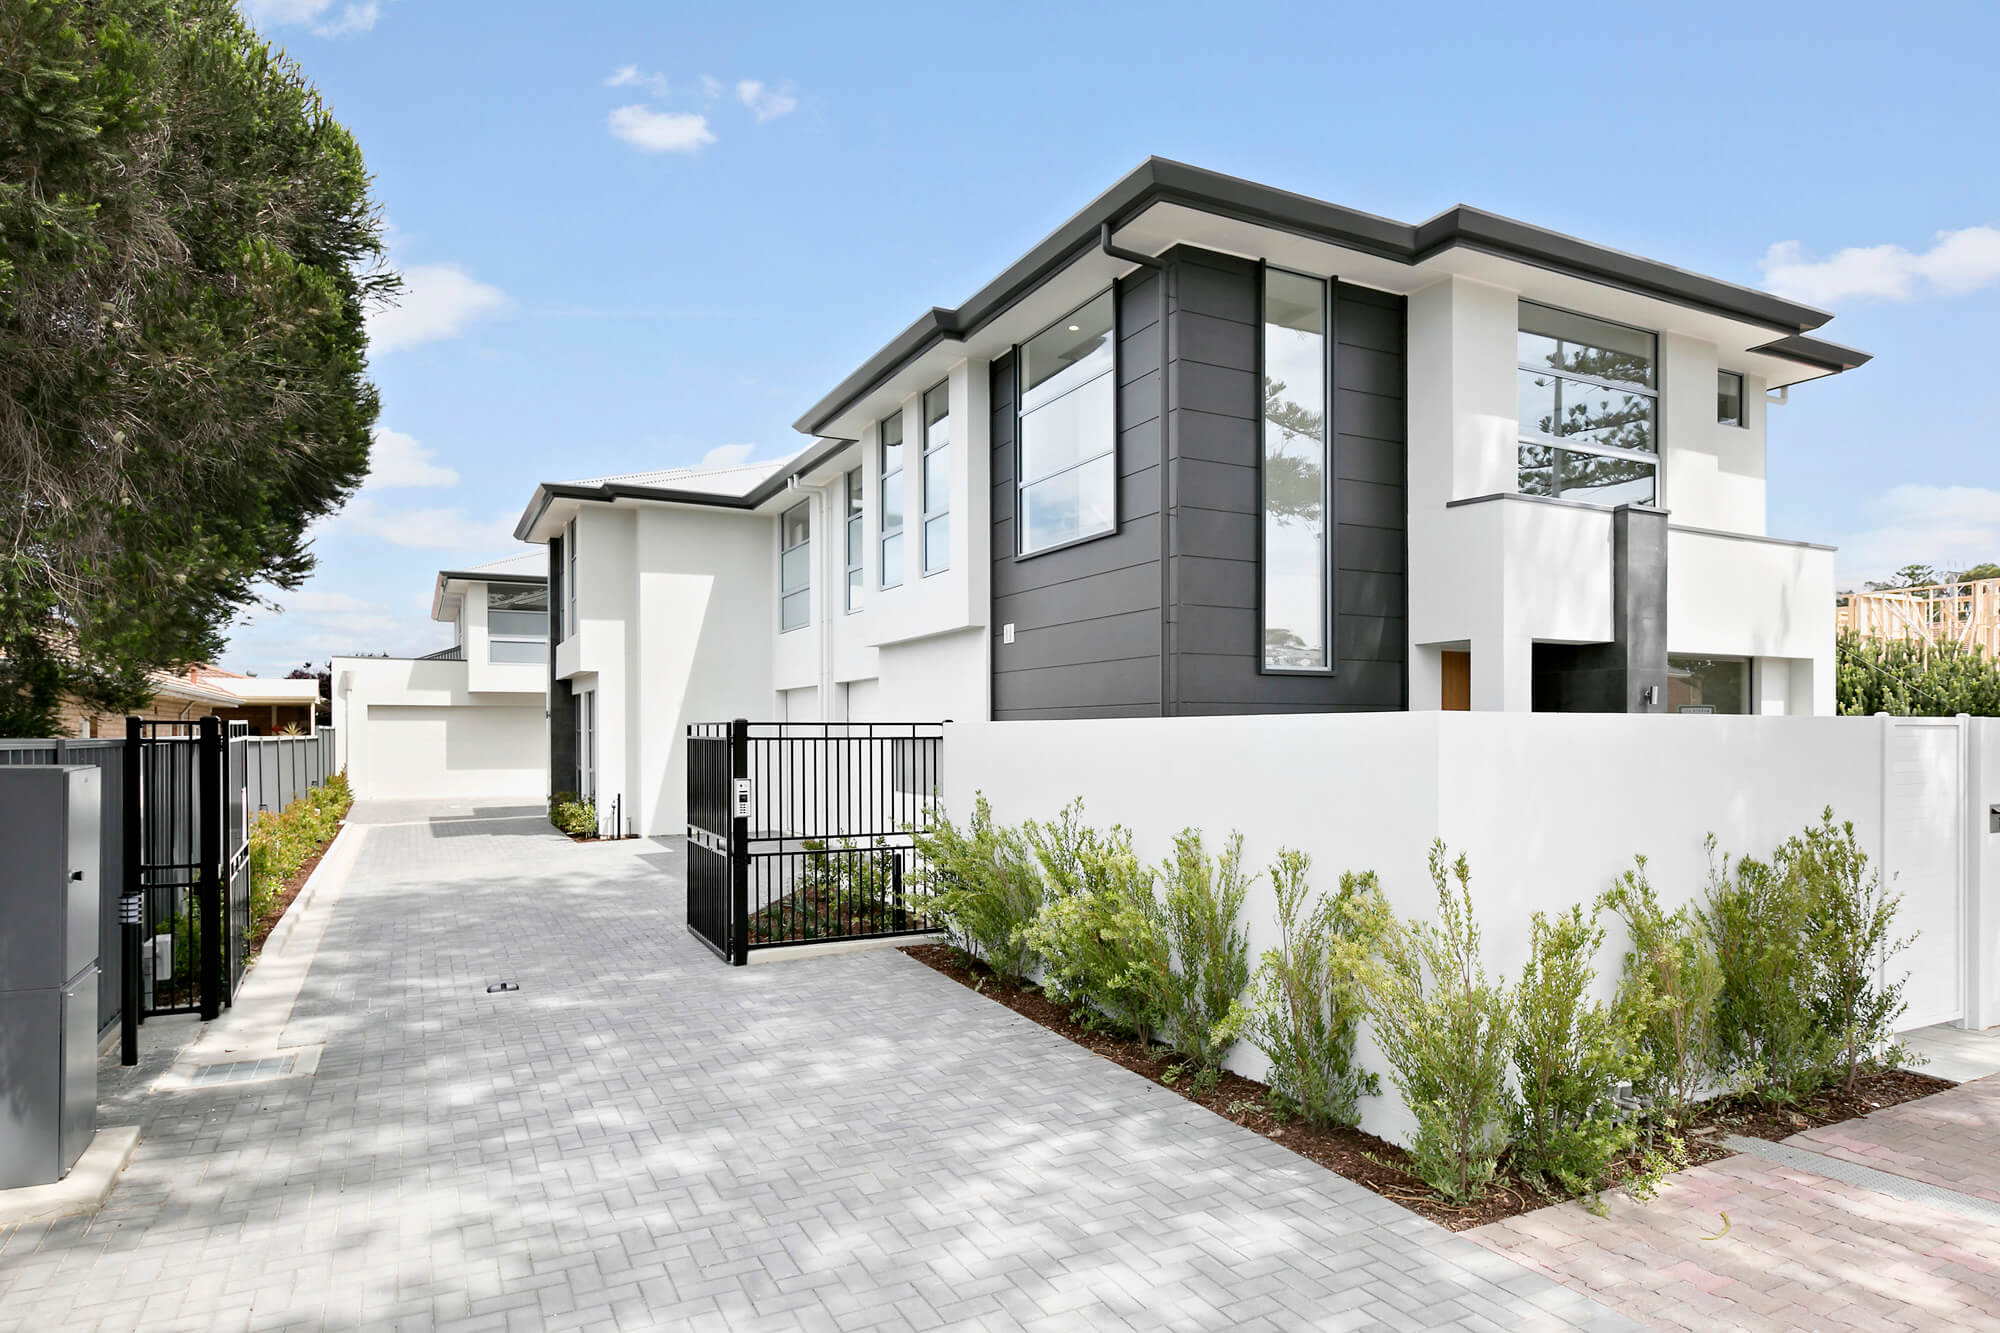 Normus Homes completed homes